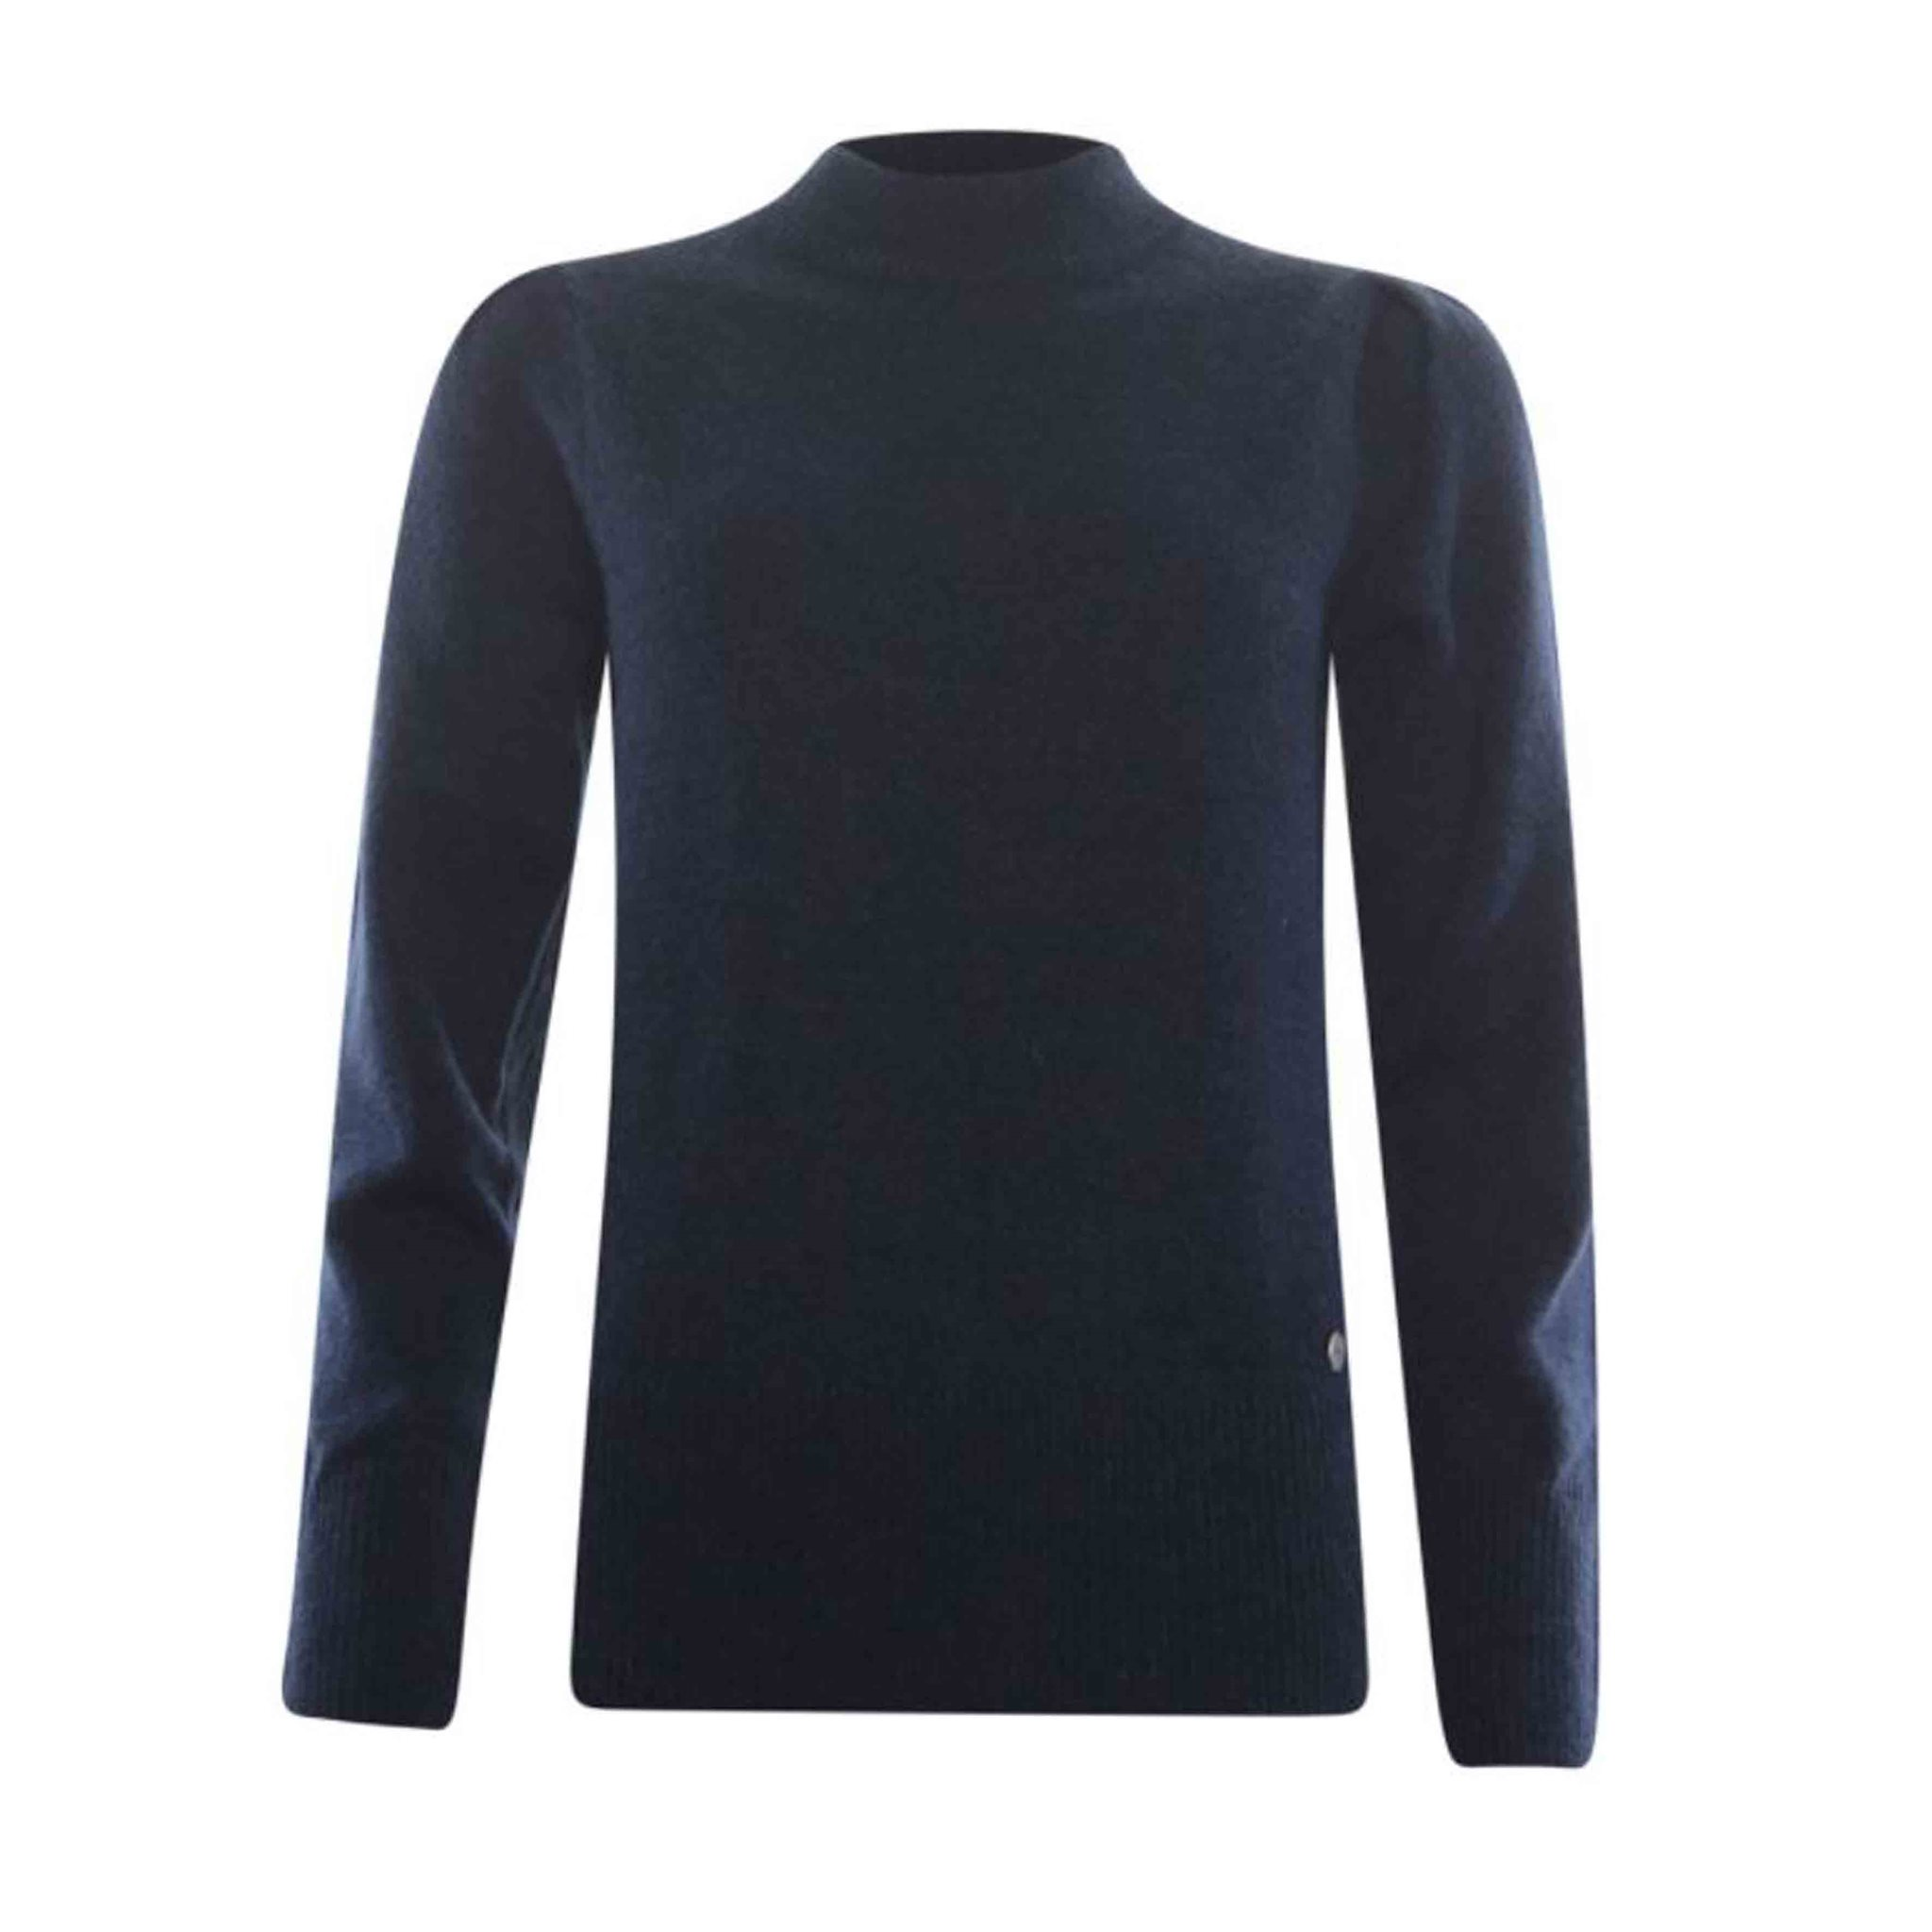 Pull turtle l/s ANOTHERWOMAN